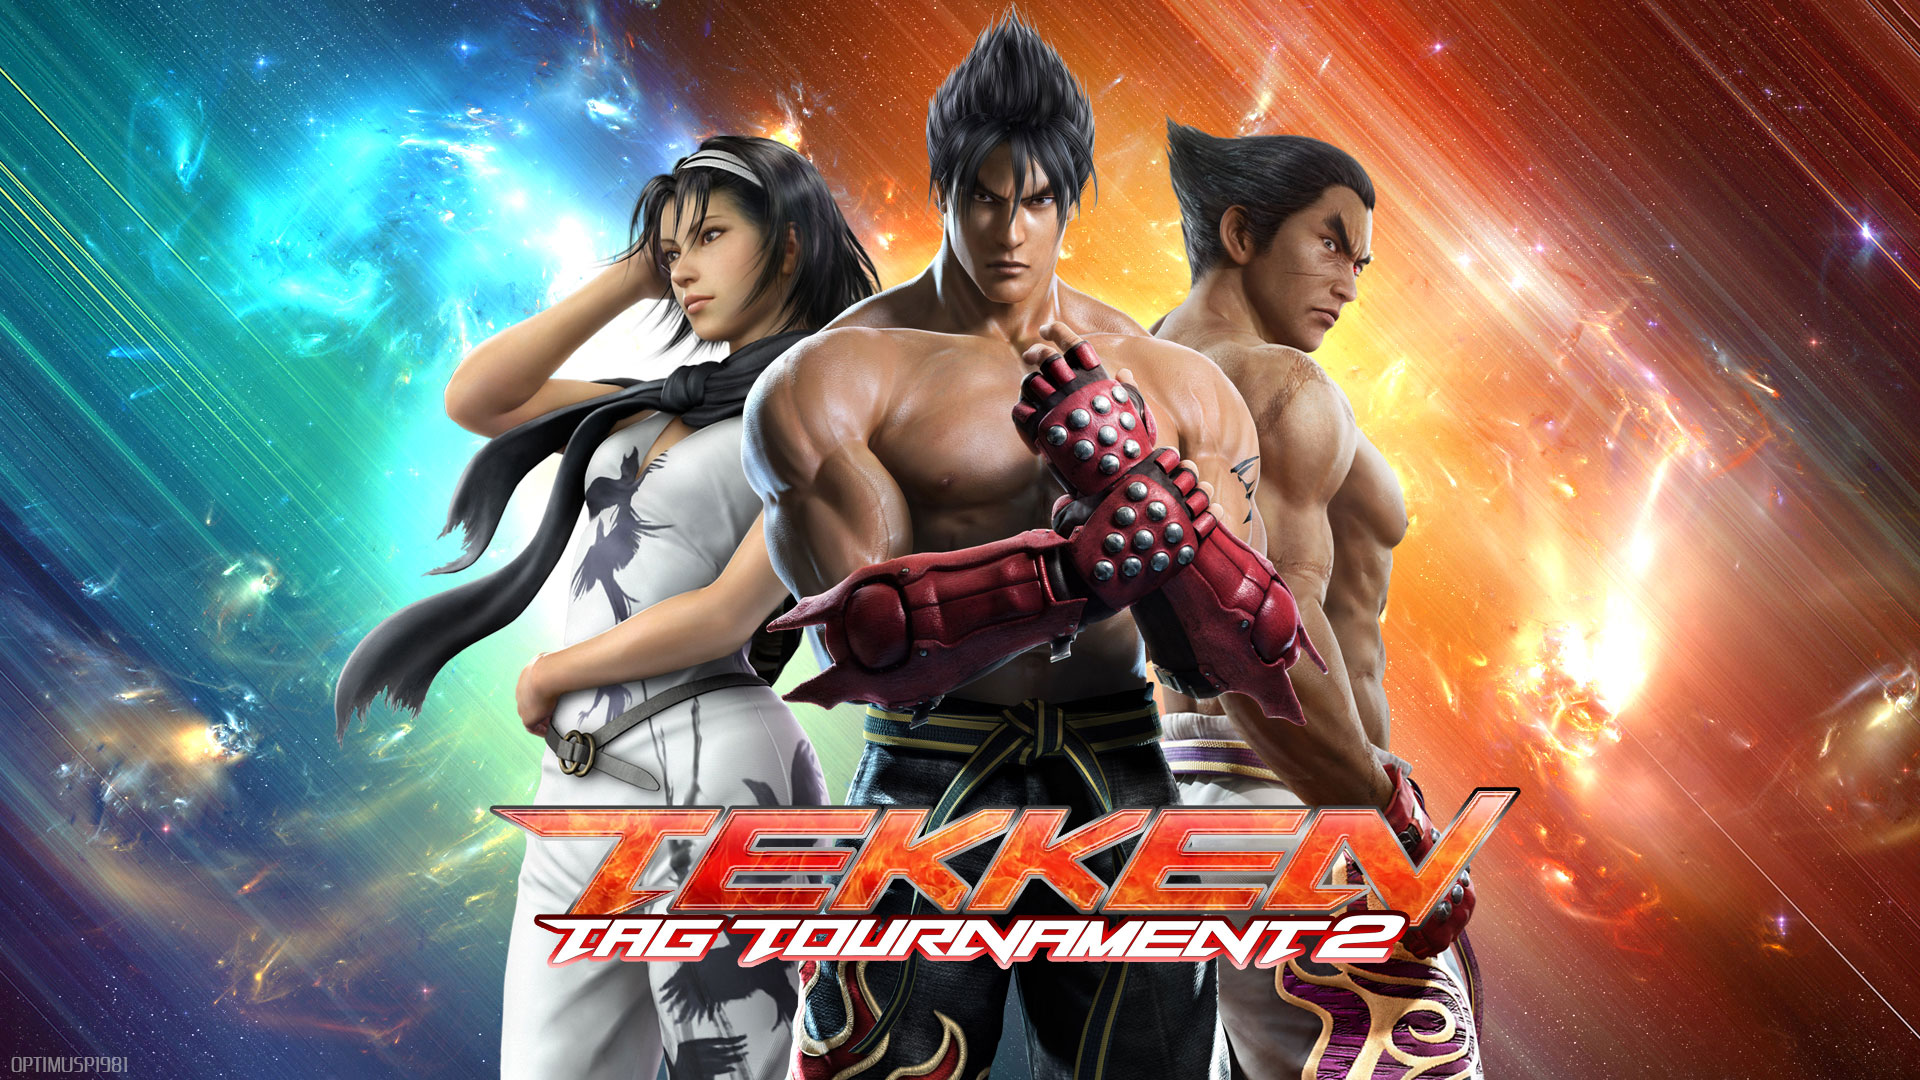 Tekken Tag Tournament 2 1920x1080 Wallpaper GamersWallpapers com 1920x1080